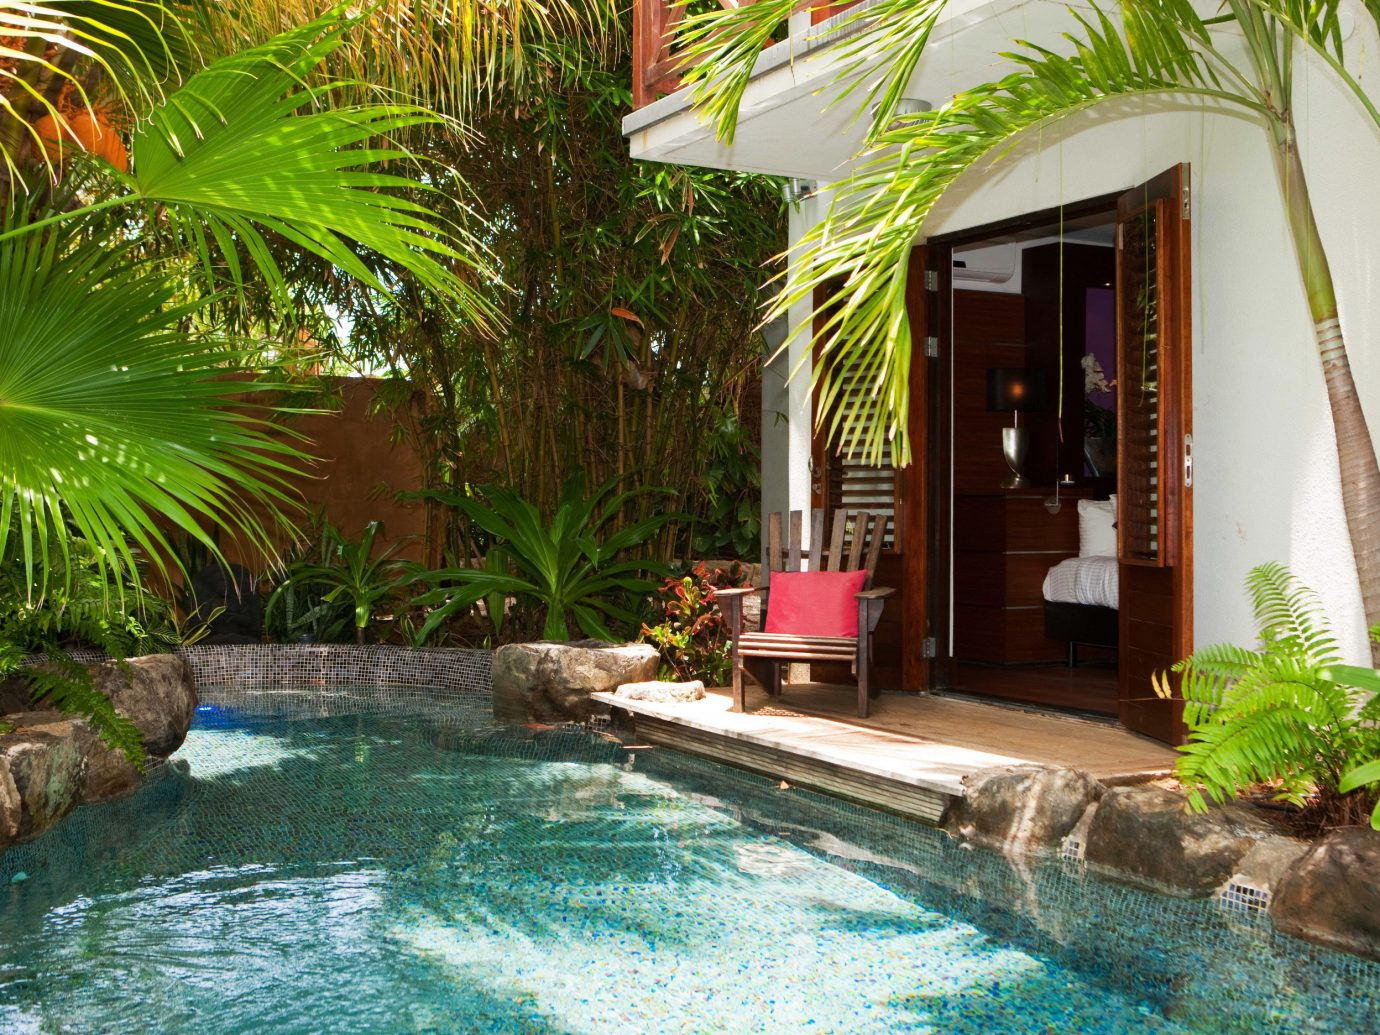 Boutique Hotels Living Lounge Luxury Modern Pool Romantic Getaways Romantic Hotels Tropical tree water swimming pool plant property Resort backyard vacation estate Villa real estate arecales eco hotel condominium palm swimming